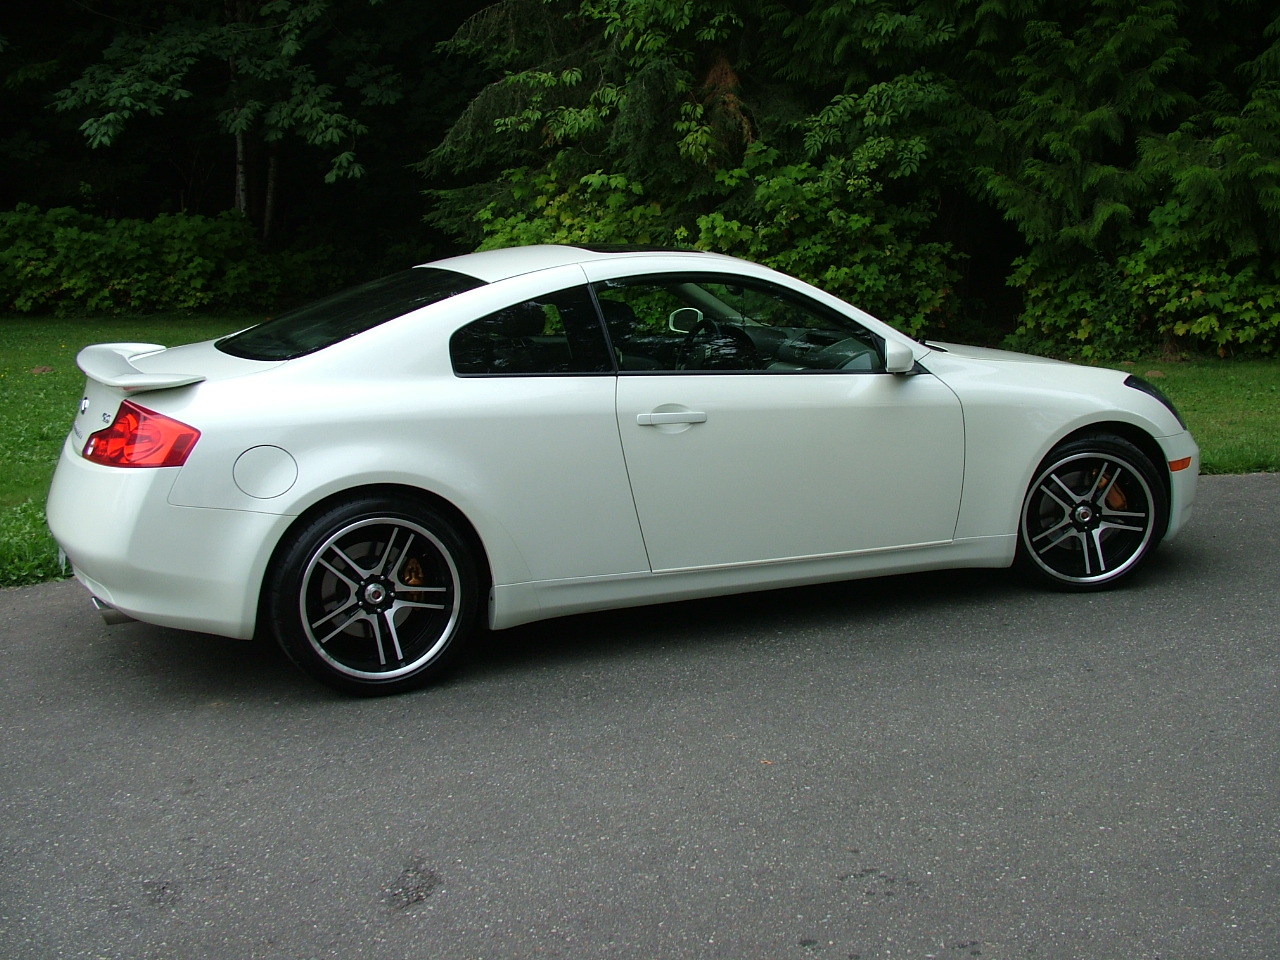 infiniti g35 coupe related images,start 0 - WeiLi ...